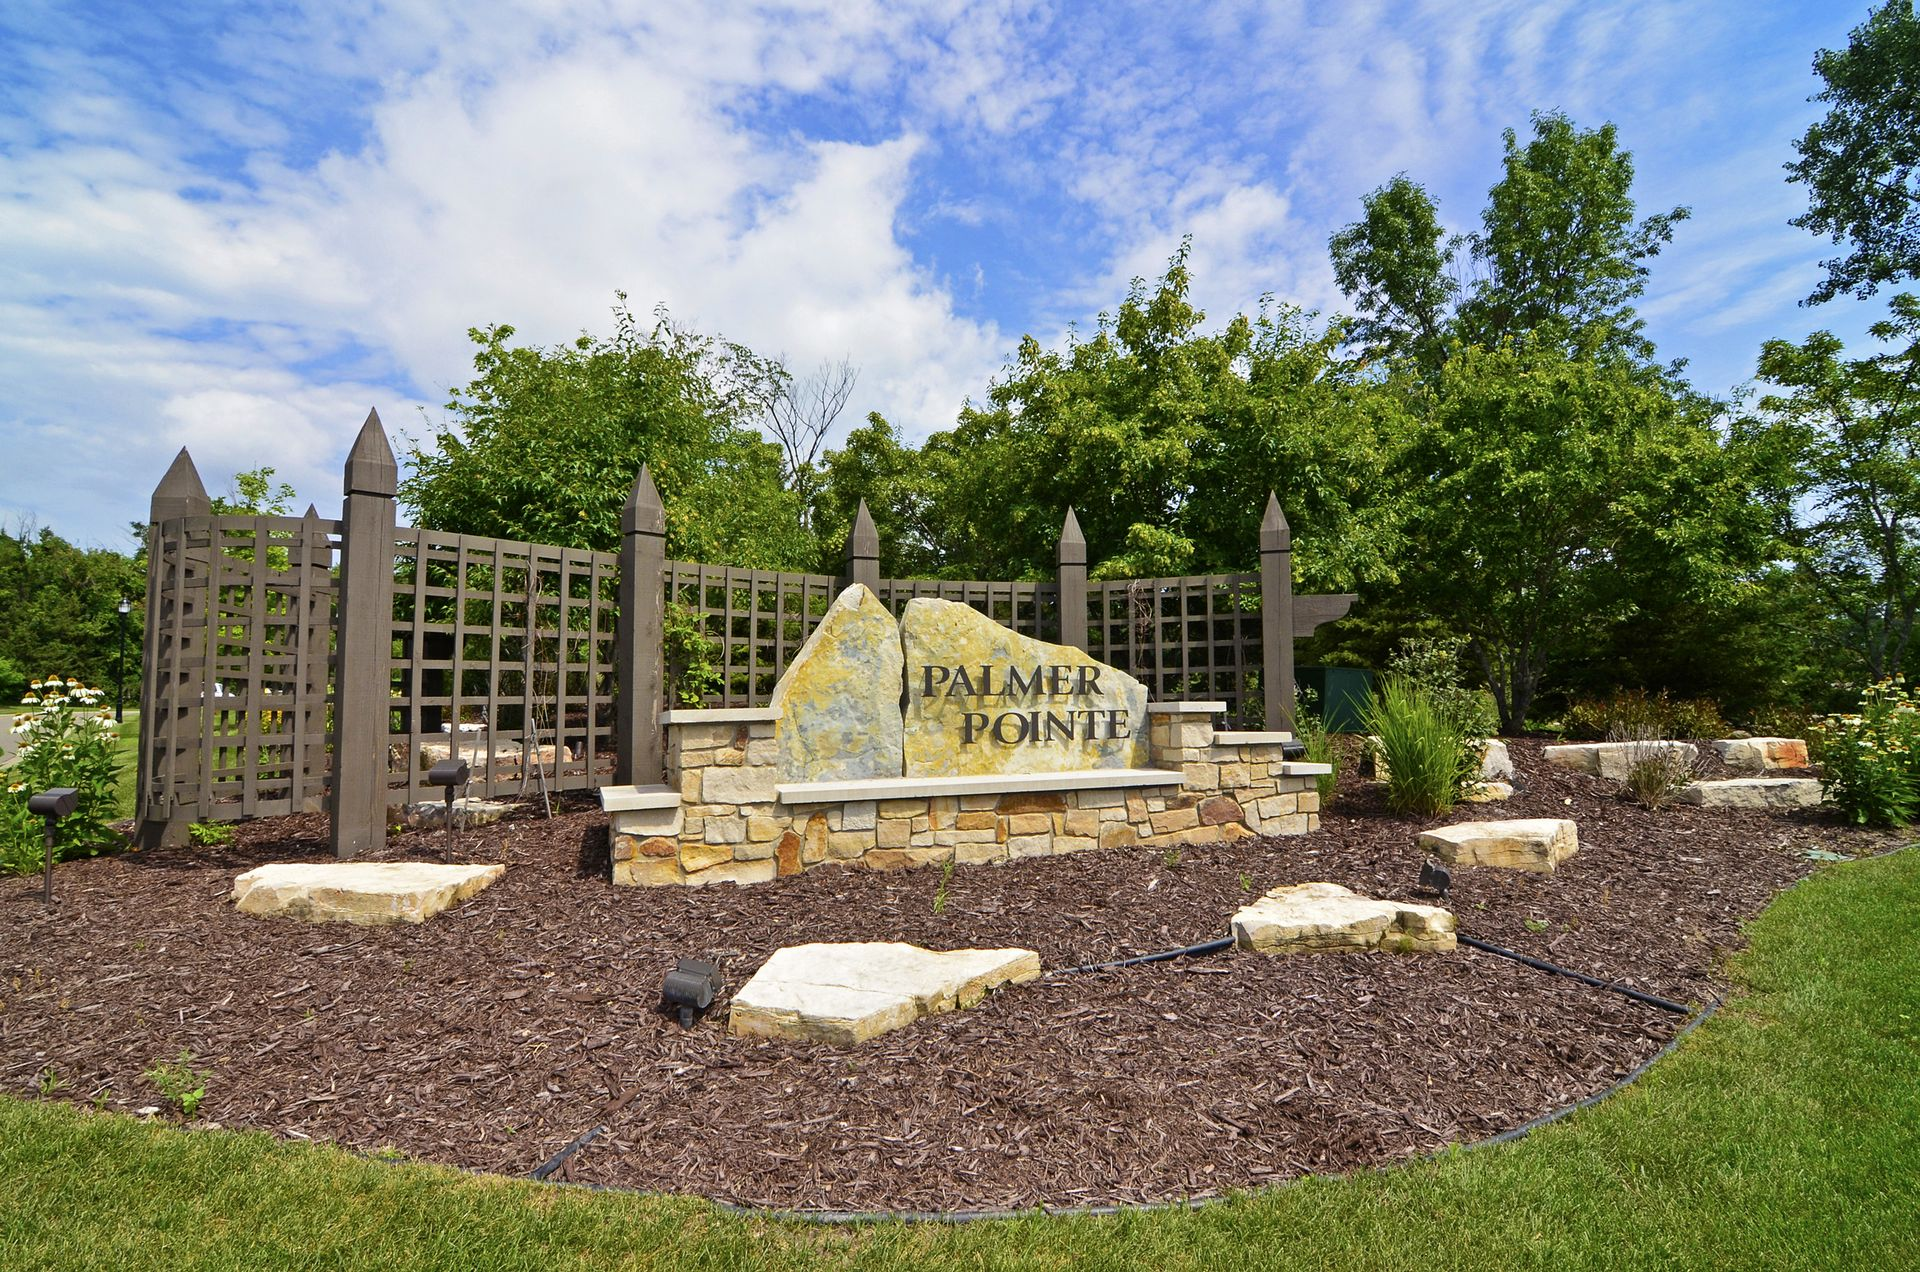 Land for Sale at 4656 Palmer Pointe Road Minnetrista, Minnesota 55331 United States